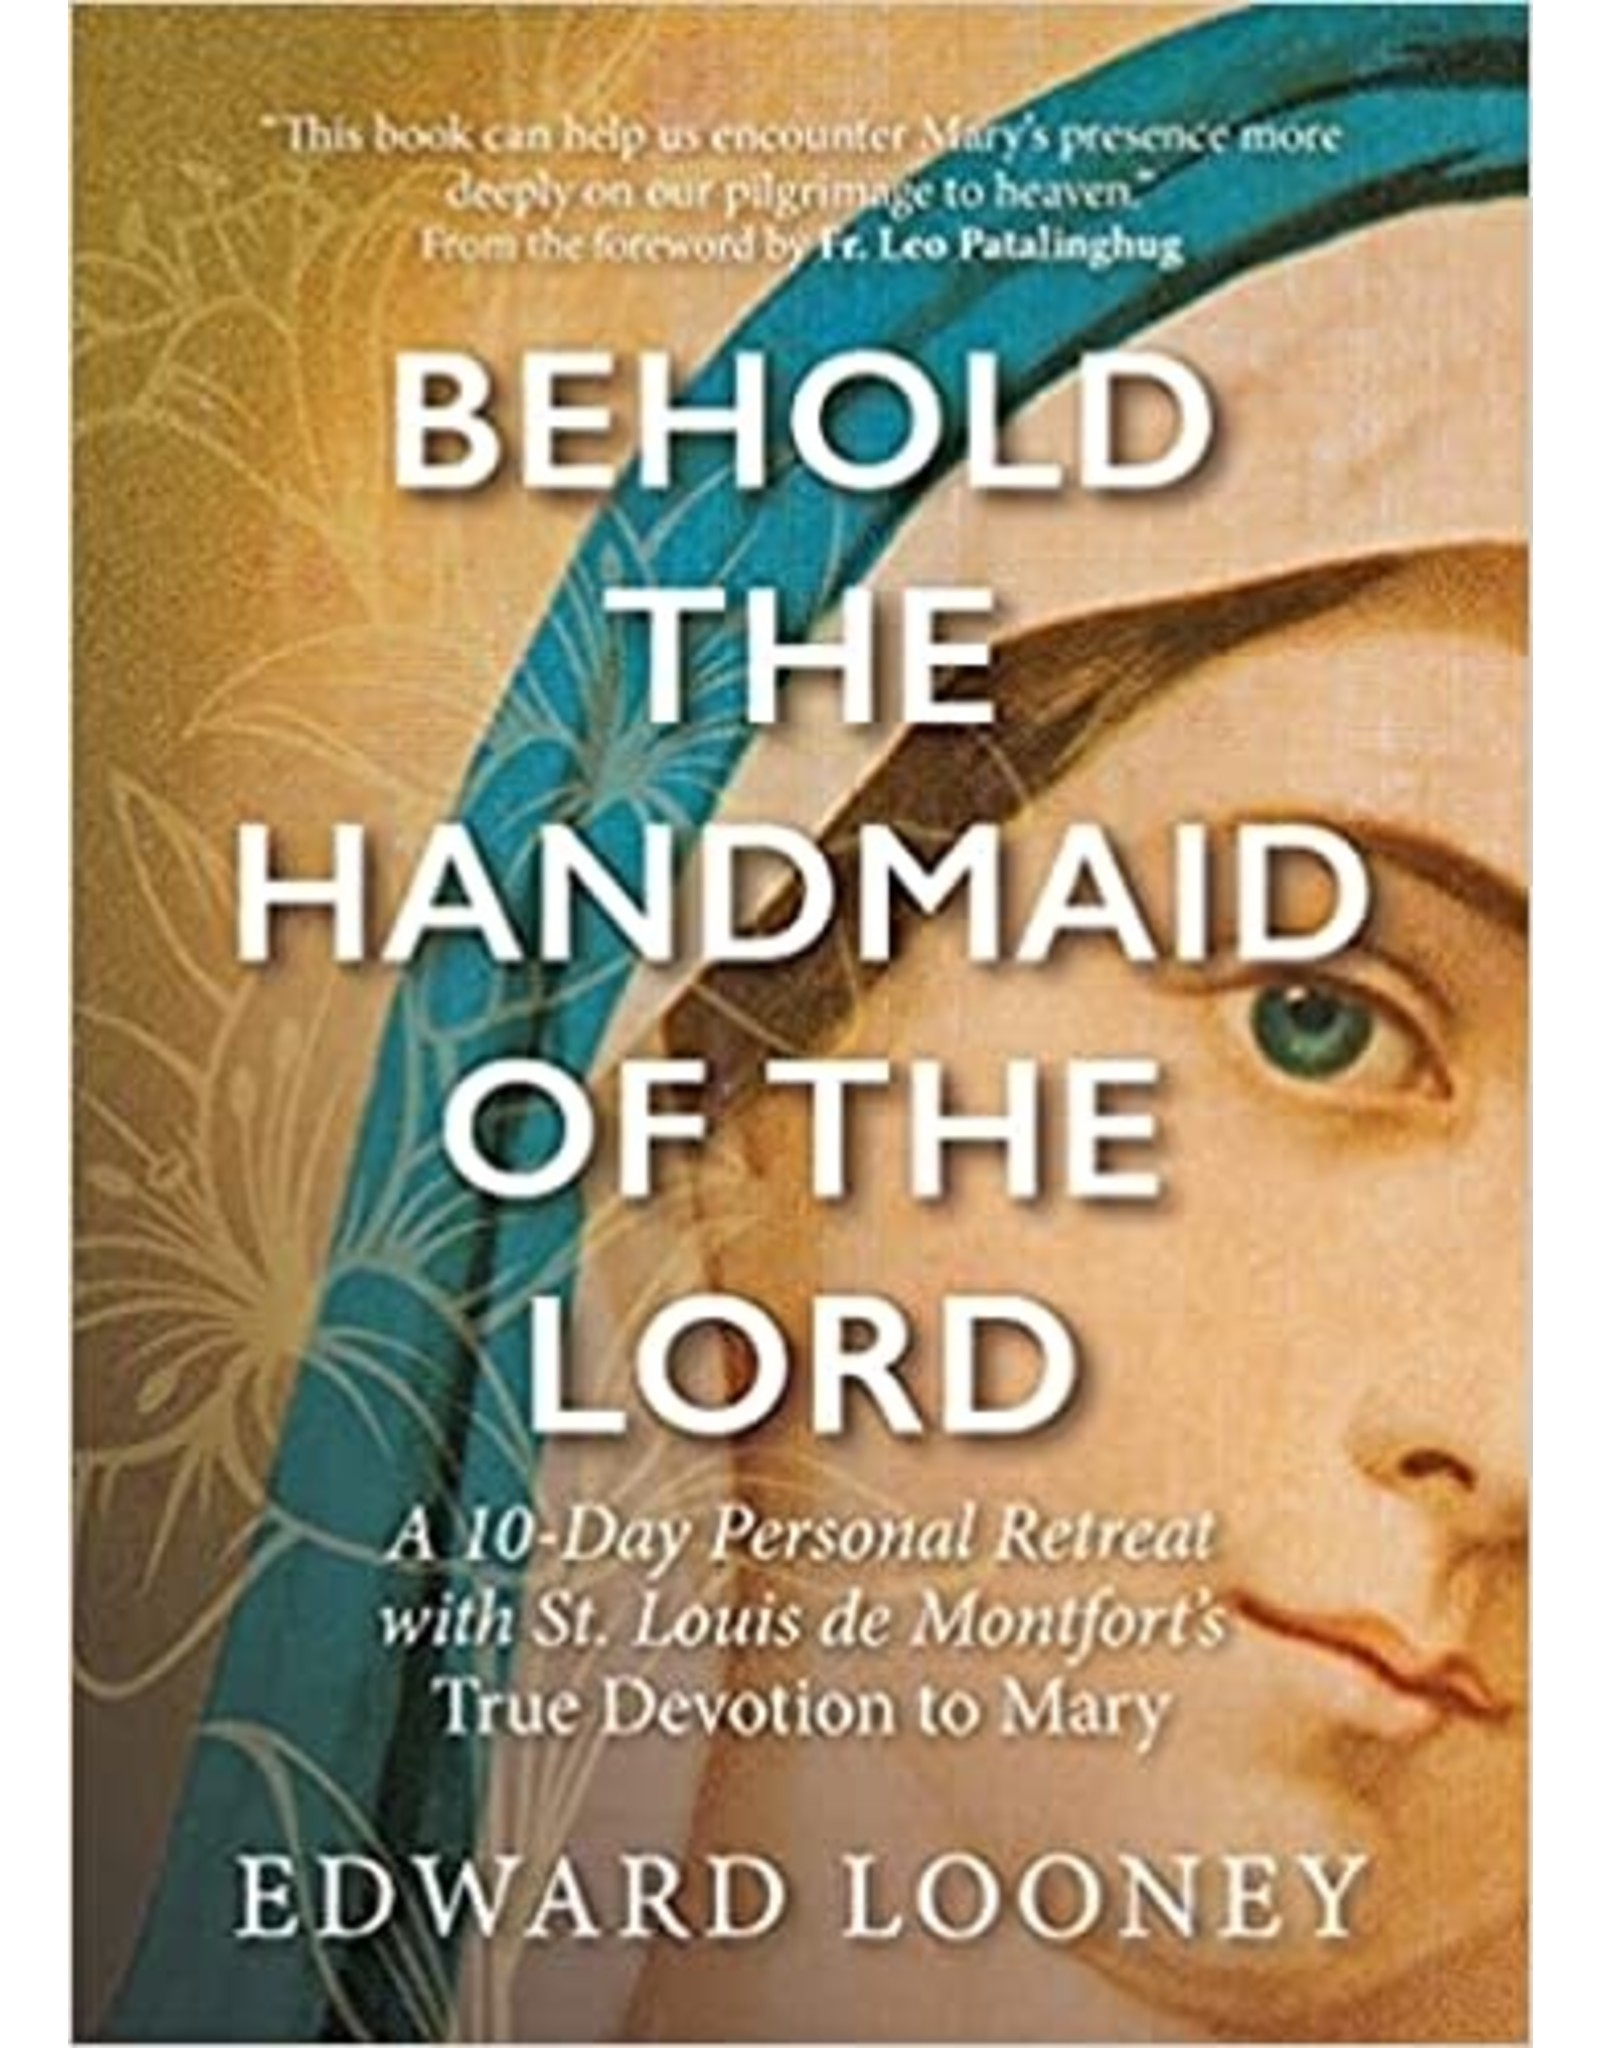 Behold the Handmaid of the Lord: A 10-Day Personal Retreat with St. Louis de Montfort's True Devotion to Mary